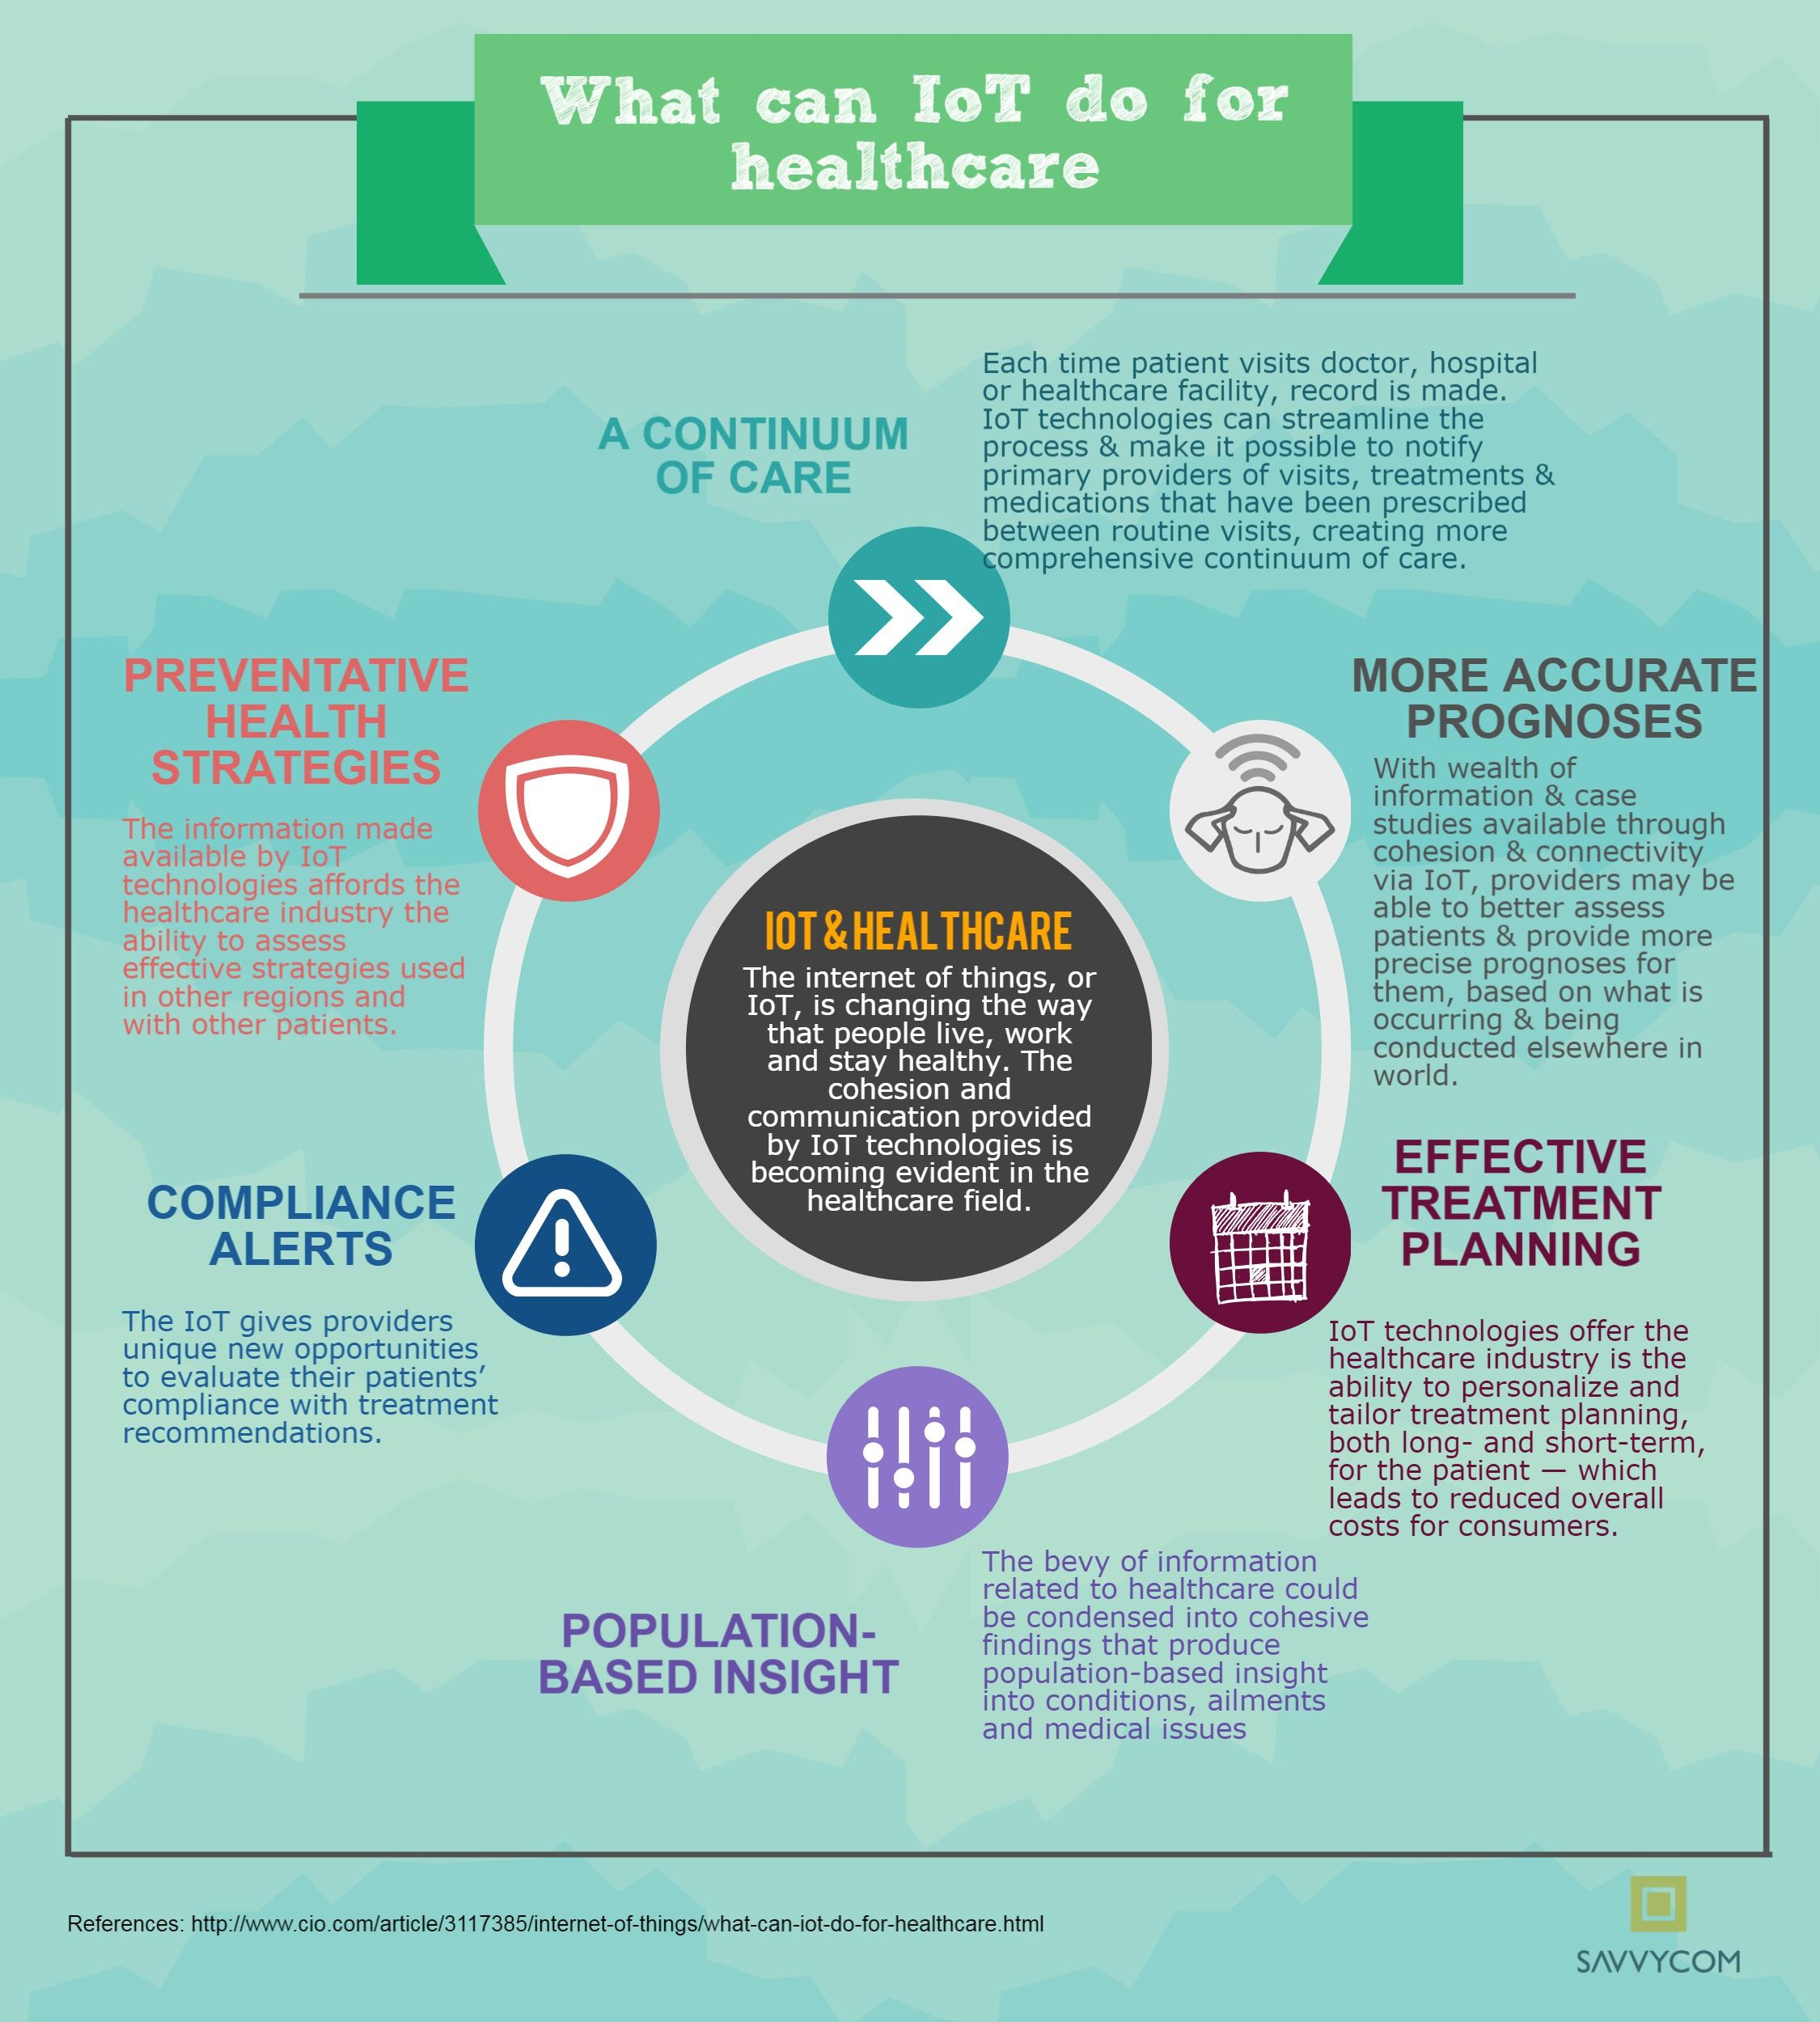 WHAT-CAN-IOT-DO-FOR-HEALTHCARE